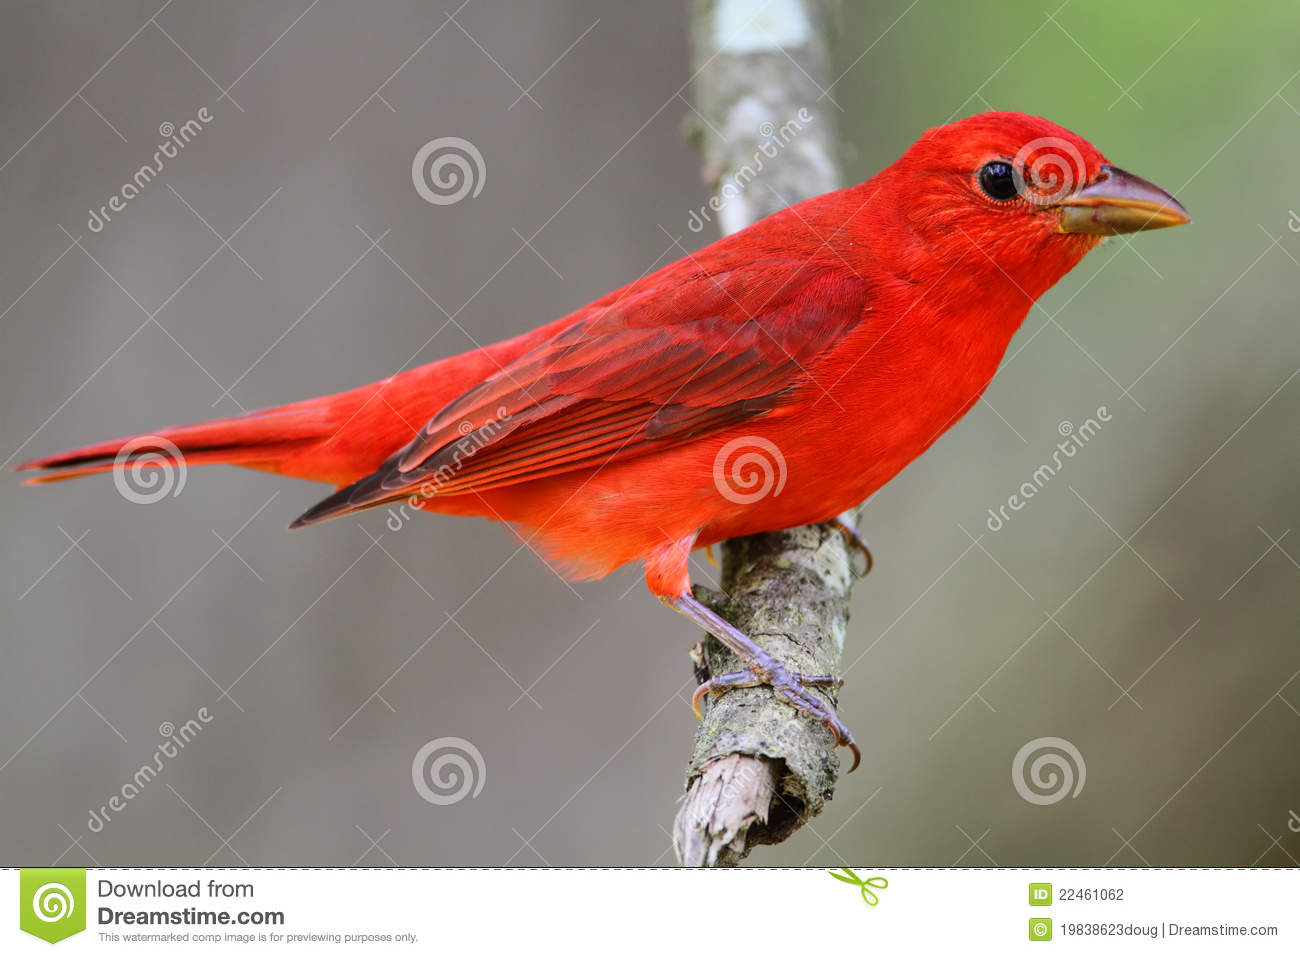 Summer Tanager clipart #18, Download drawings